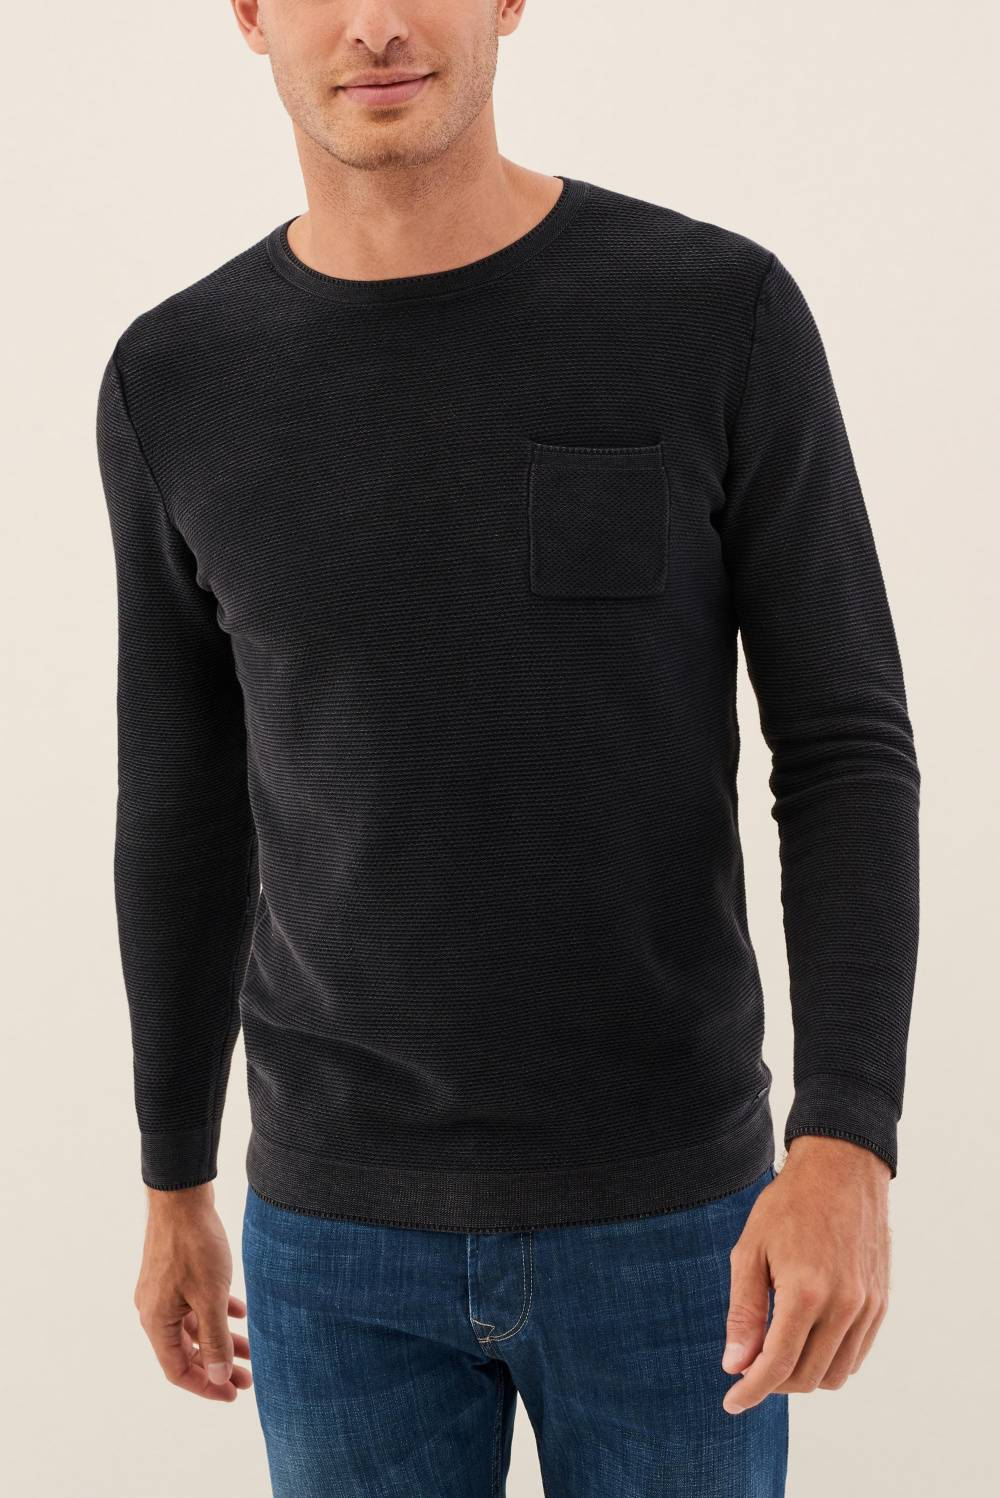 Sweatshirt with pocket - Salsa